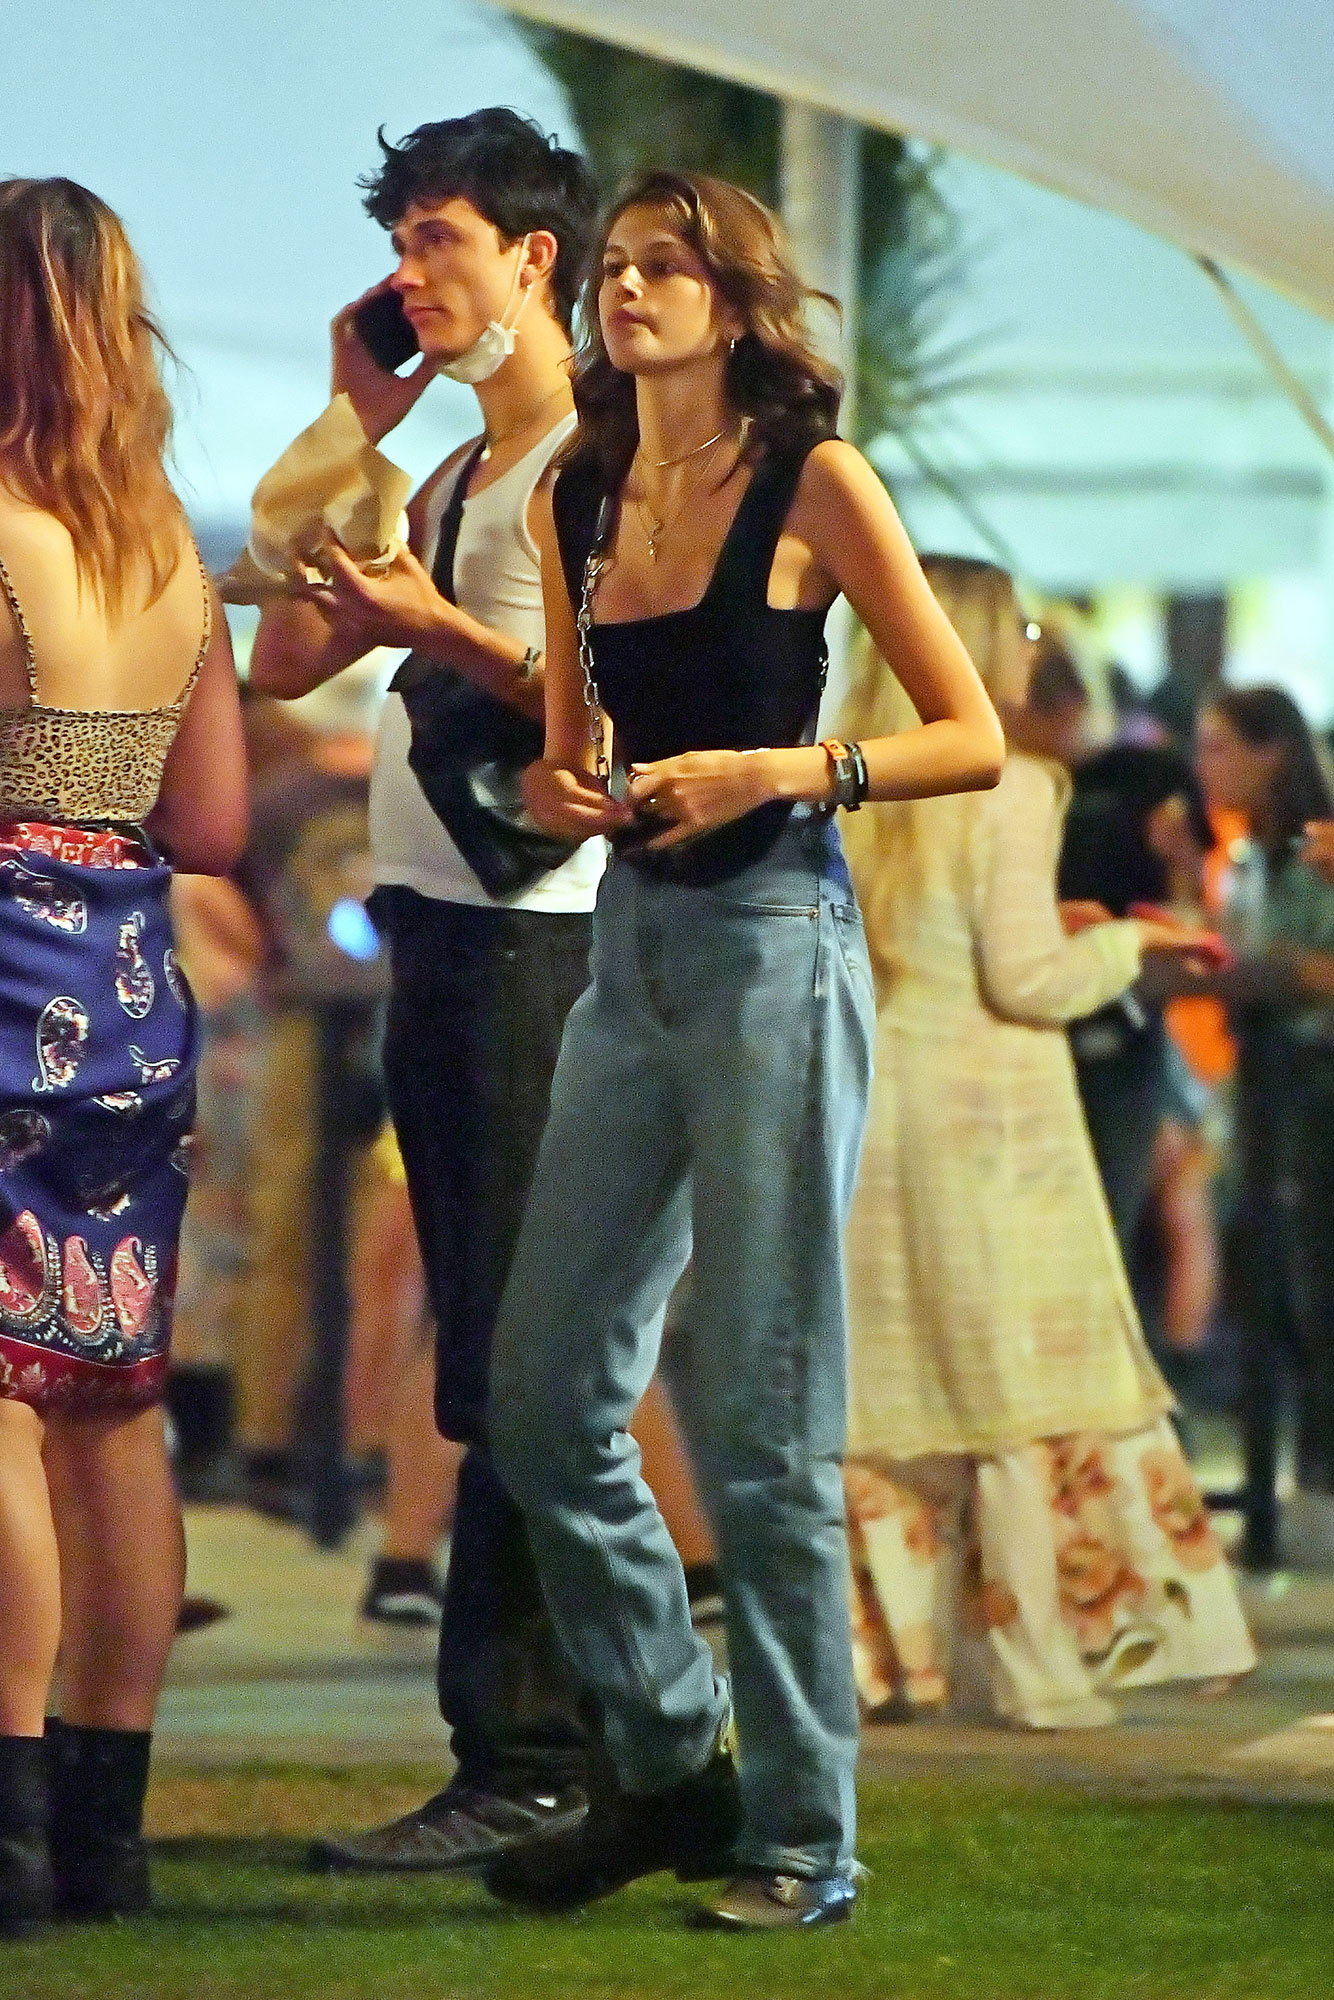 coachella fashion Kaia Gerber - Slouchy jeans and a strappy black top were the Coachella equivalent of model-off-duty-chic for Cindy Crawford's mini-me on Sunday, April 14.